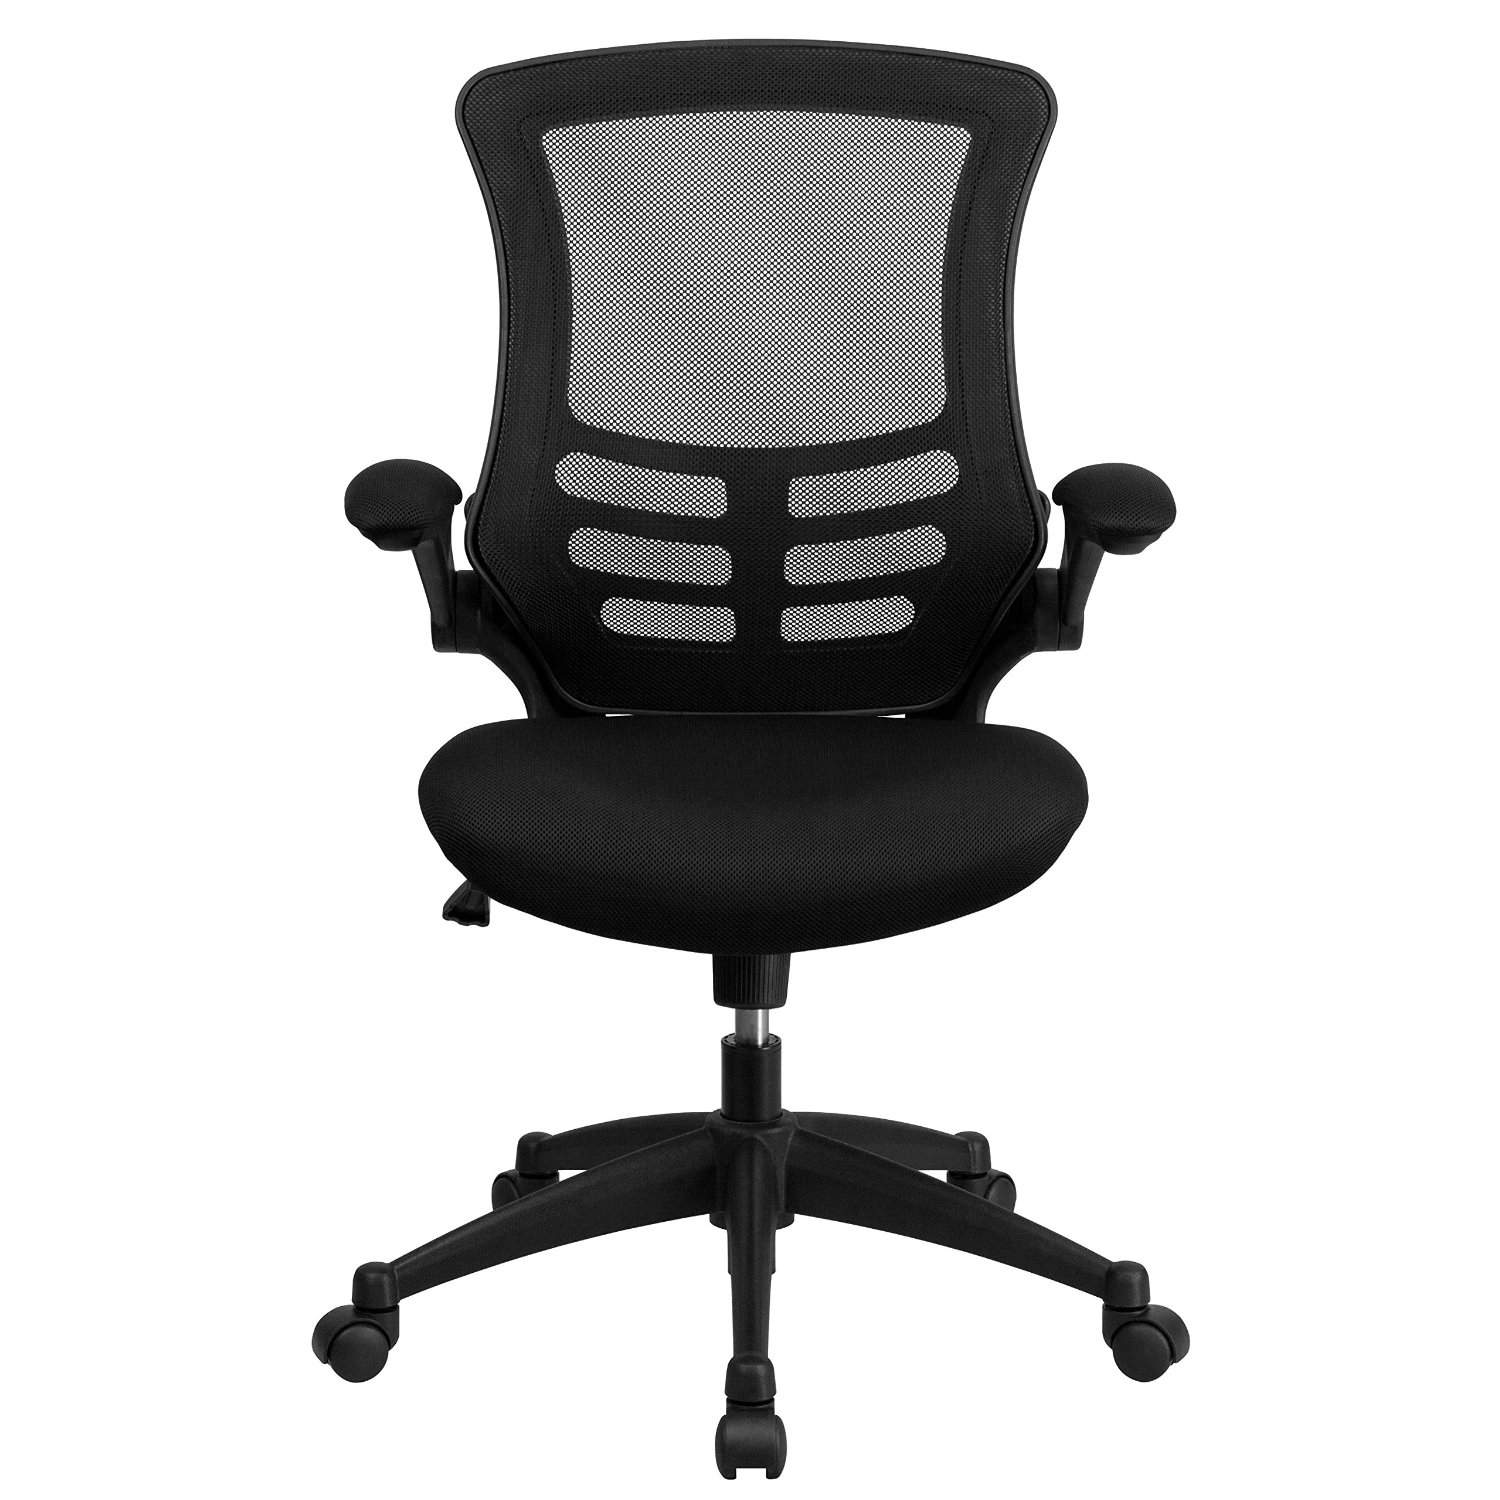 best ergonomic office chair (august 2017) – buyer's guide and reviews